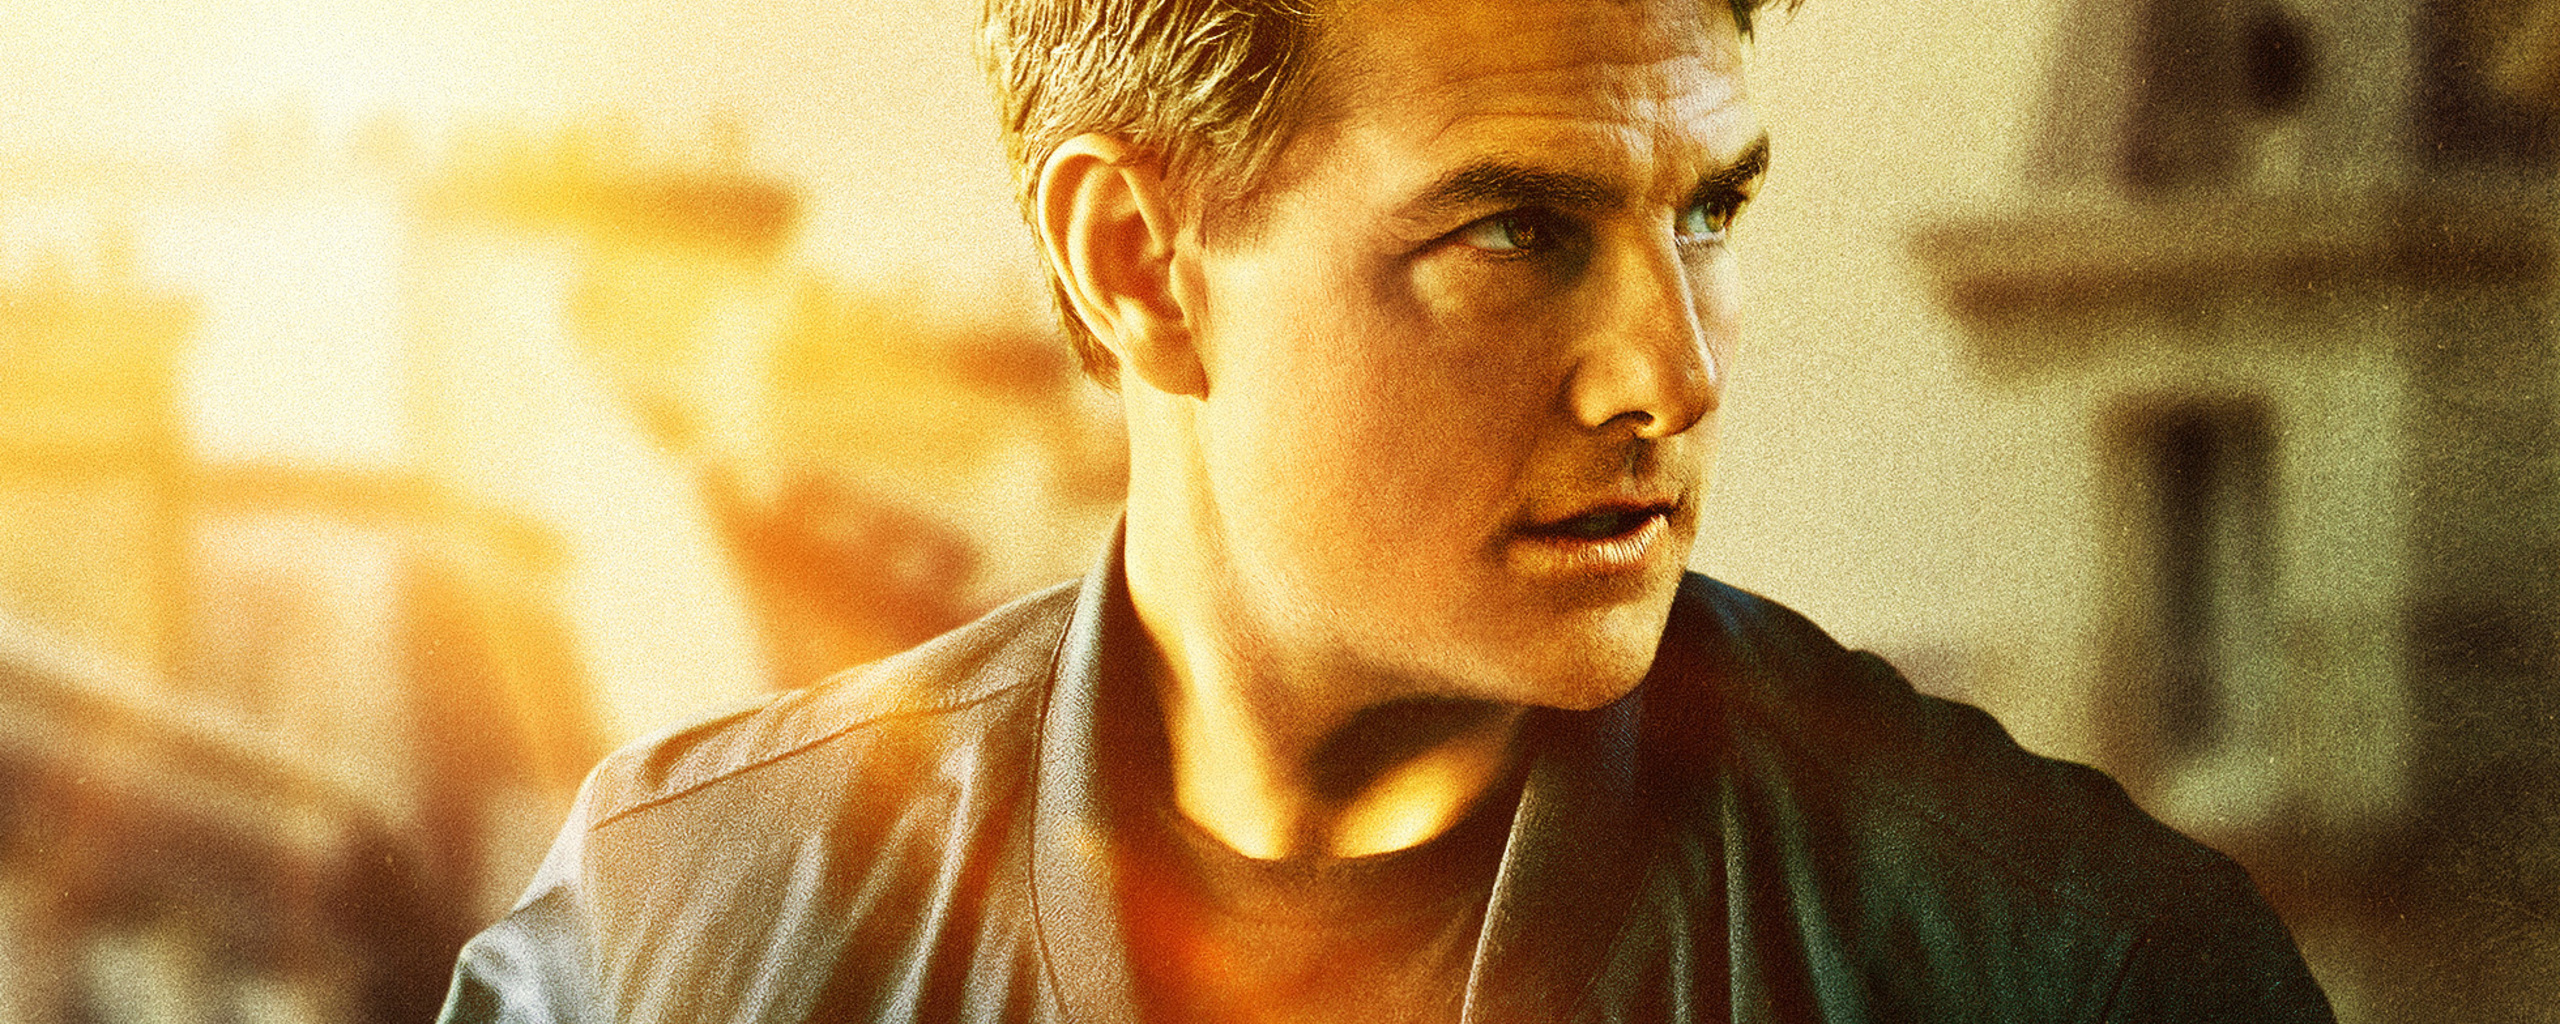 tom-cruise-as-ethan-hunt-in-mission-impossible-fallout-hi.jpg